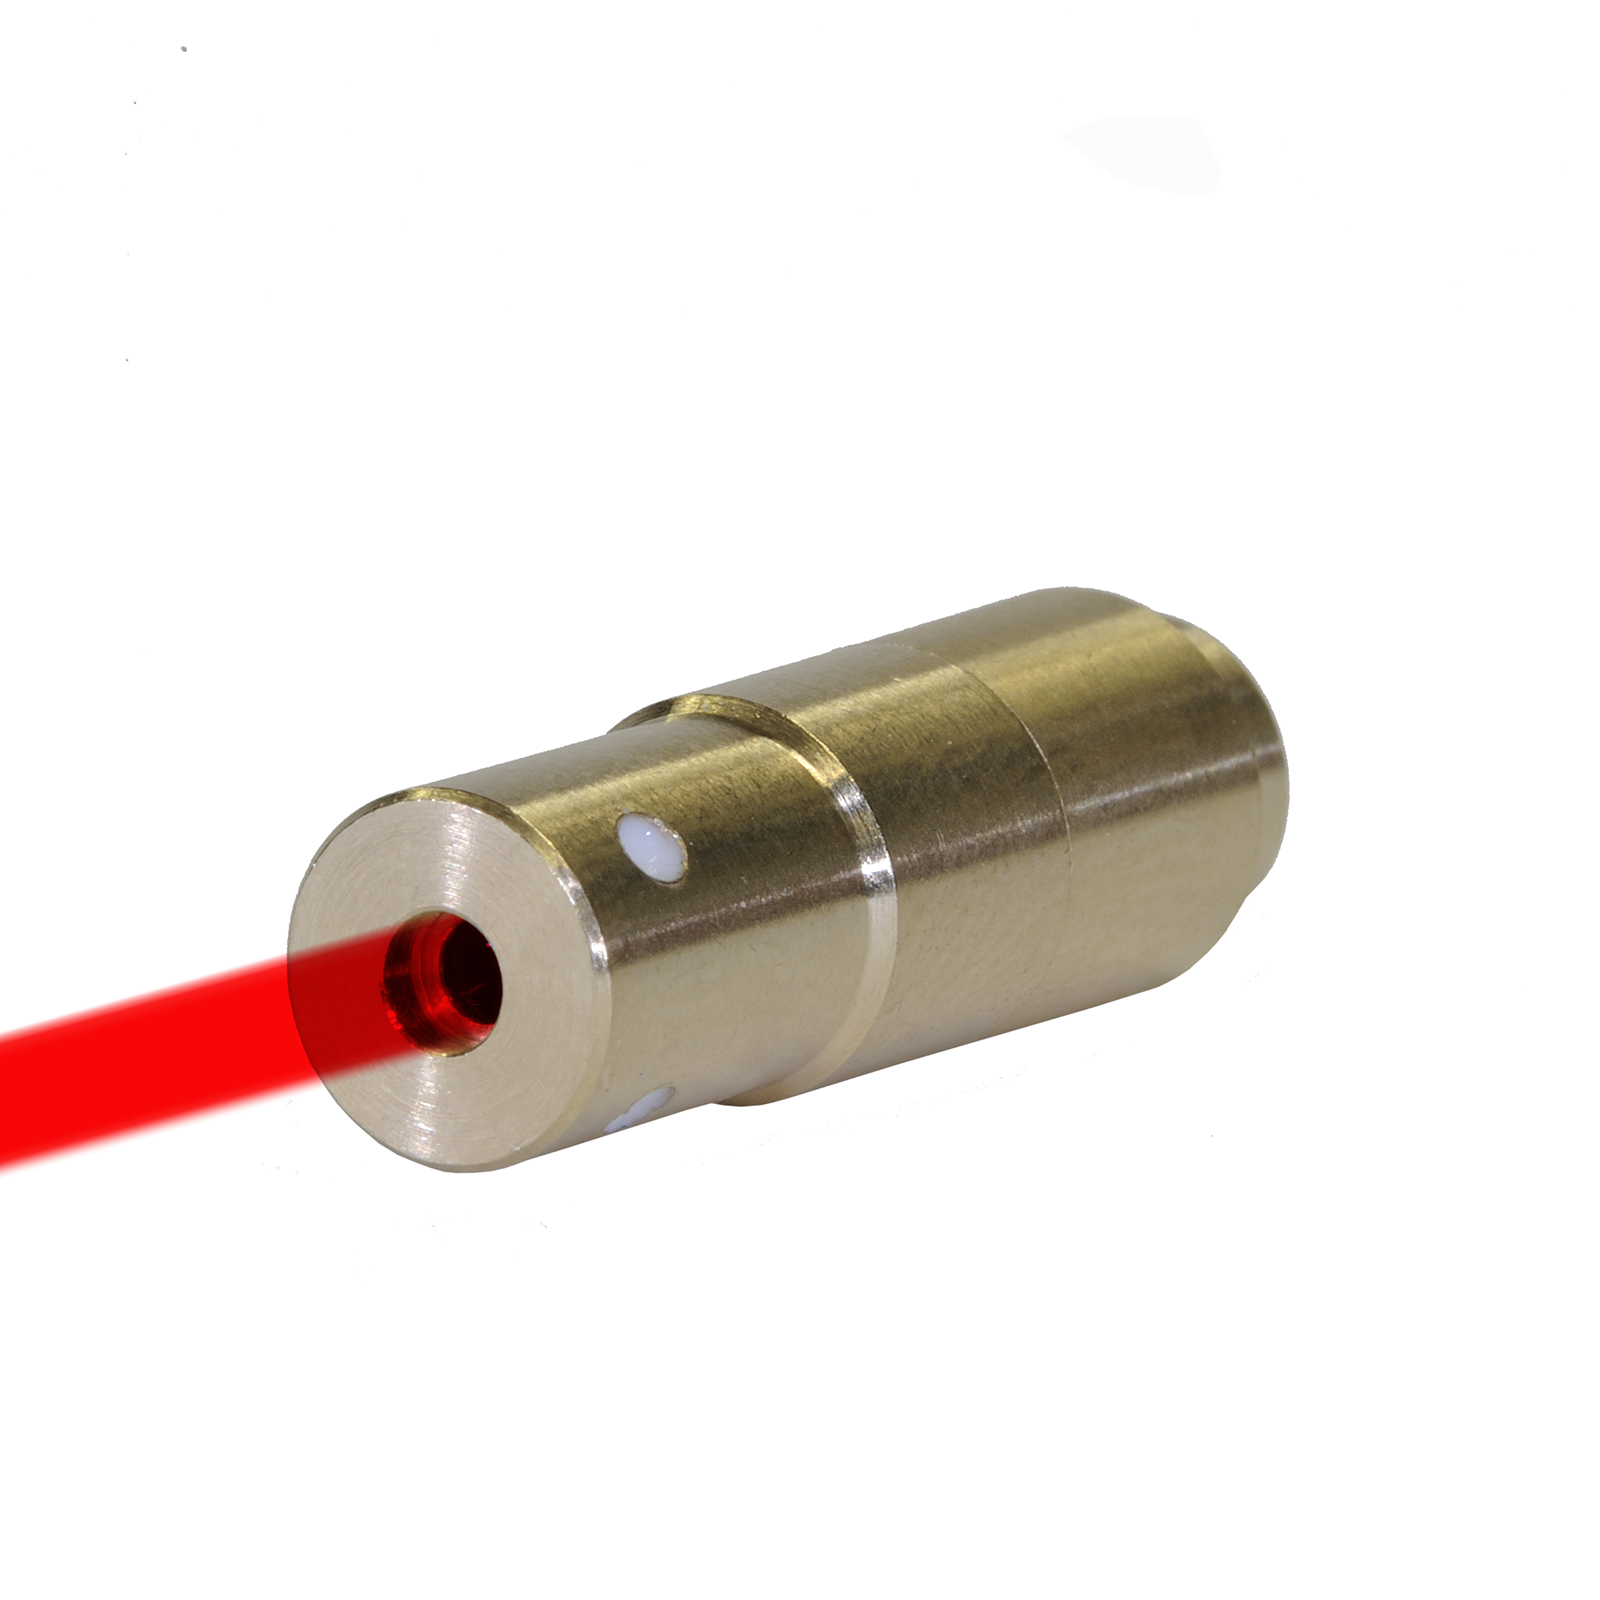 Laser Trainer Cartridge: 9mm Tactical Training Laser Cartridge